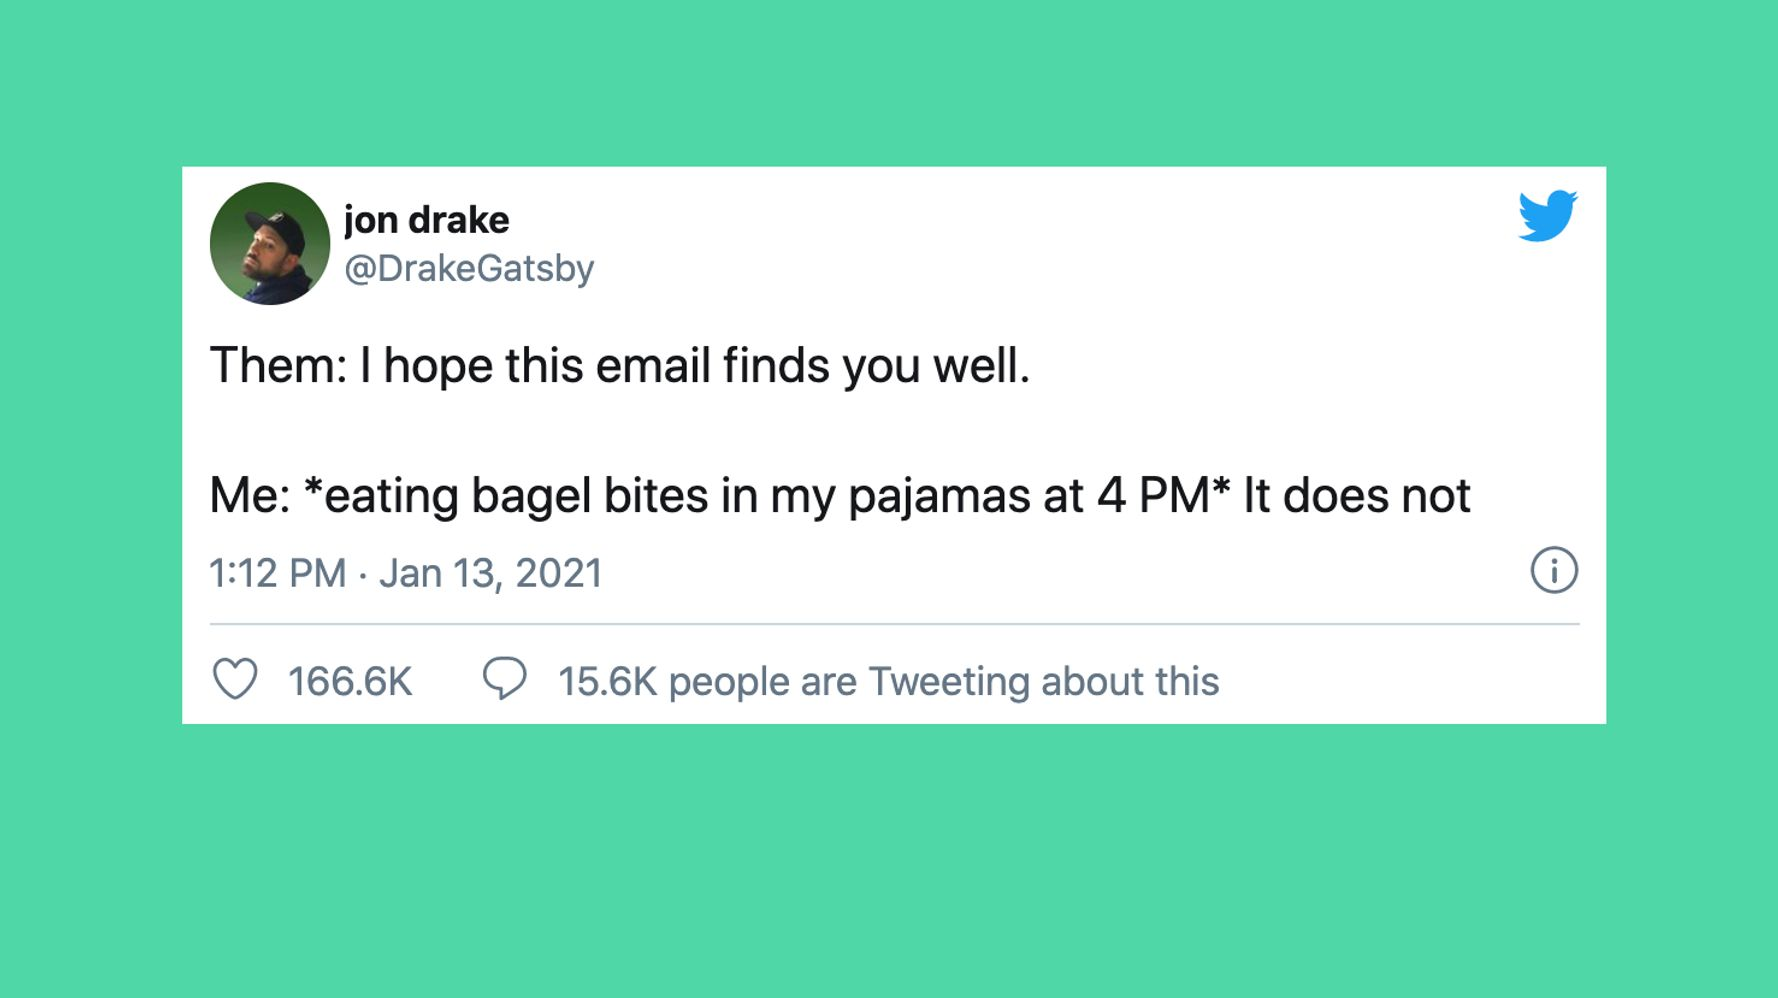 13 Funny, Relatable Tweets About How The Email Did Not Find You Well